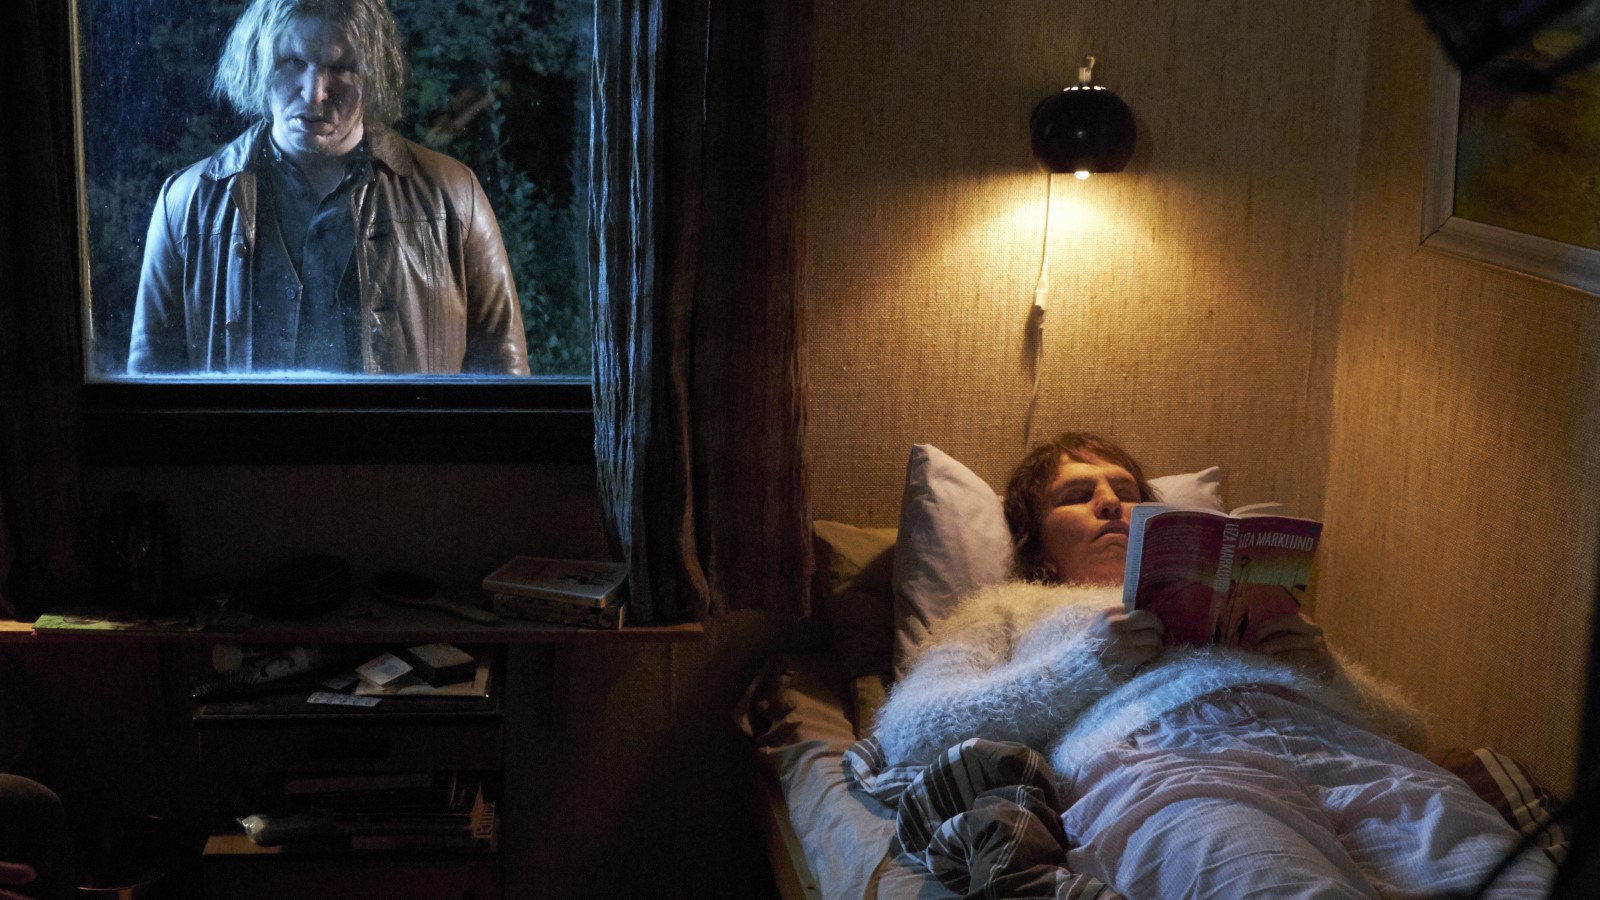 A woman (Eva Melander) lying on a bed reading, while a man (Eero Milonoff) is staring through her window into the room.